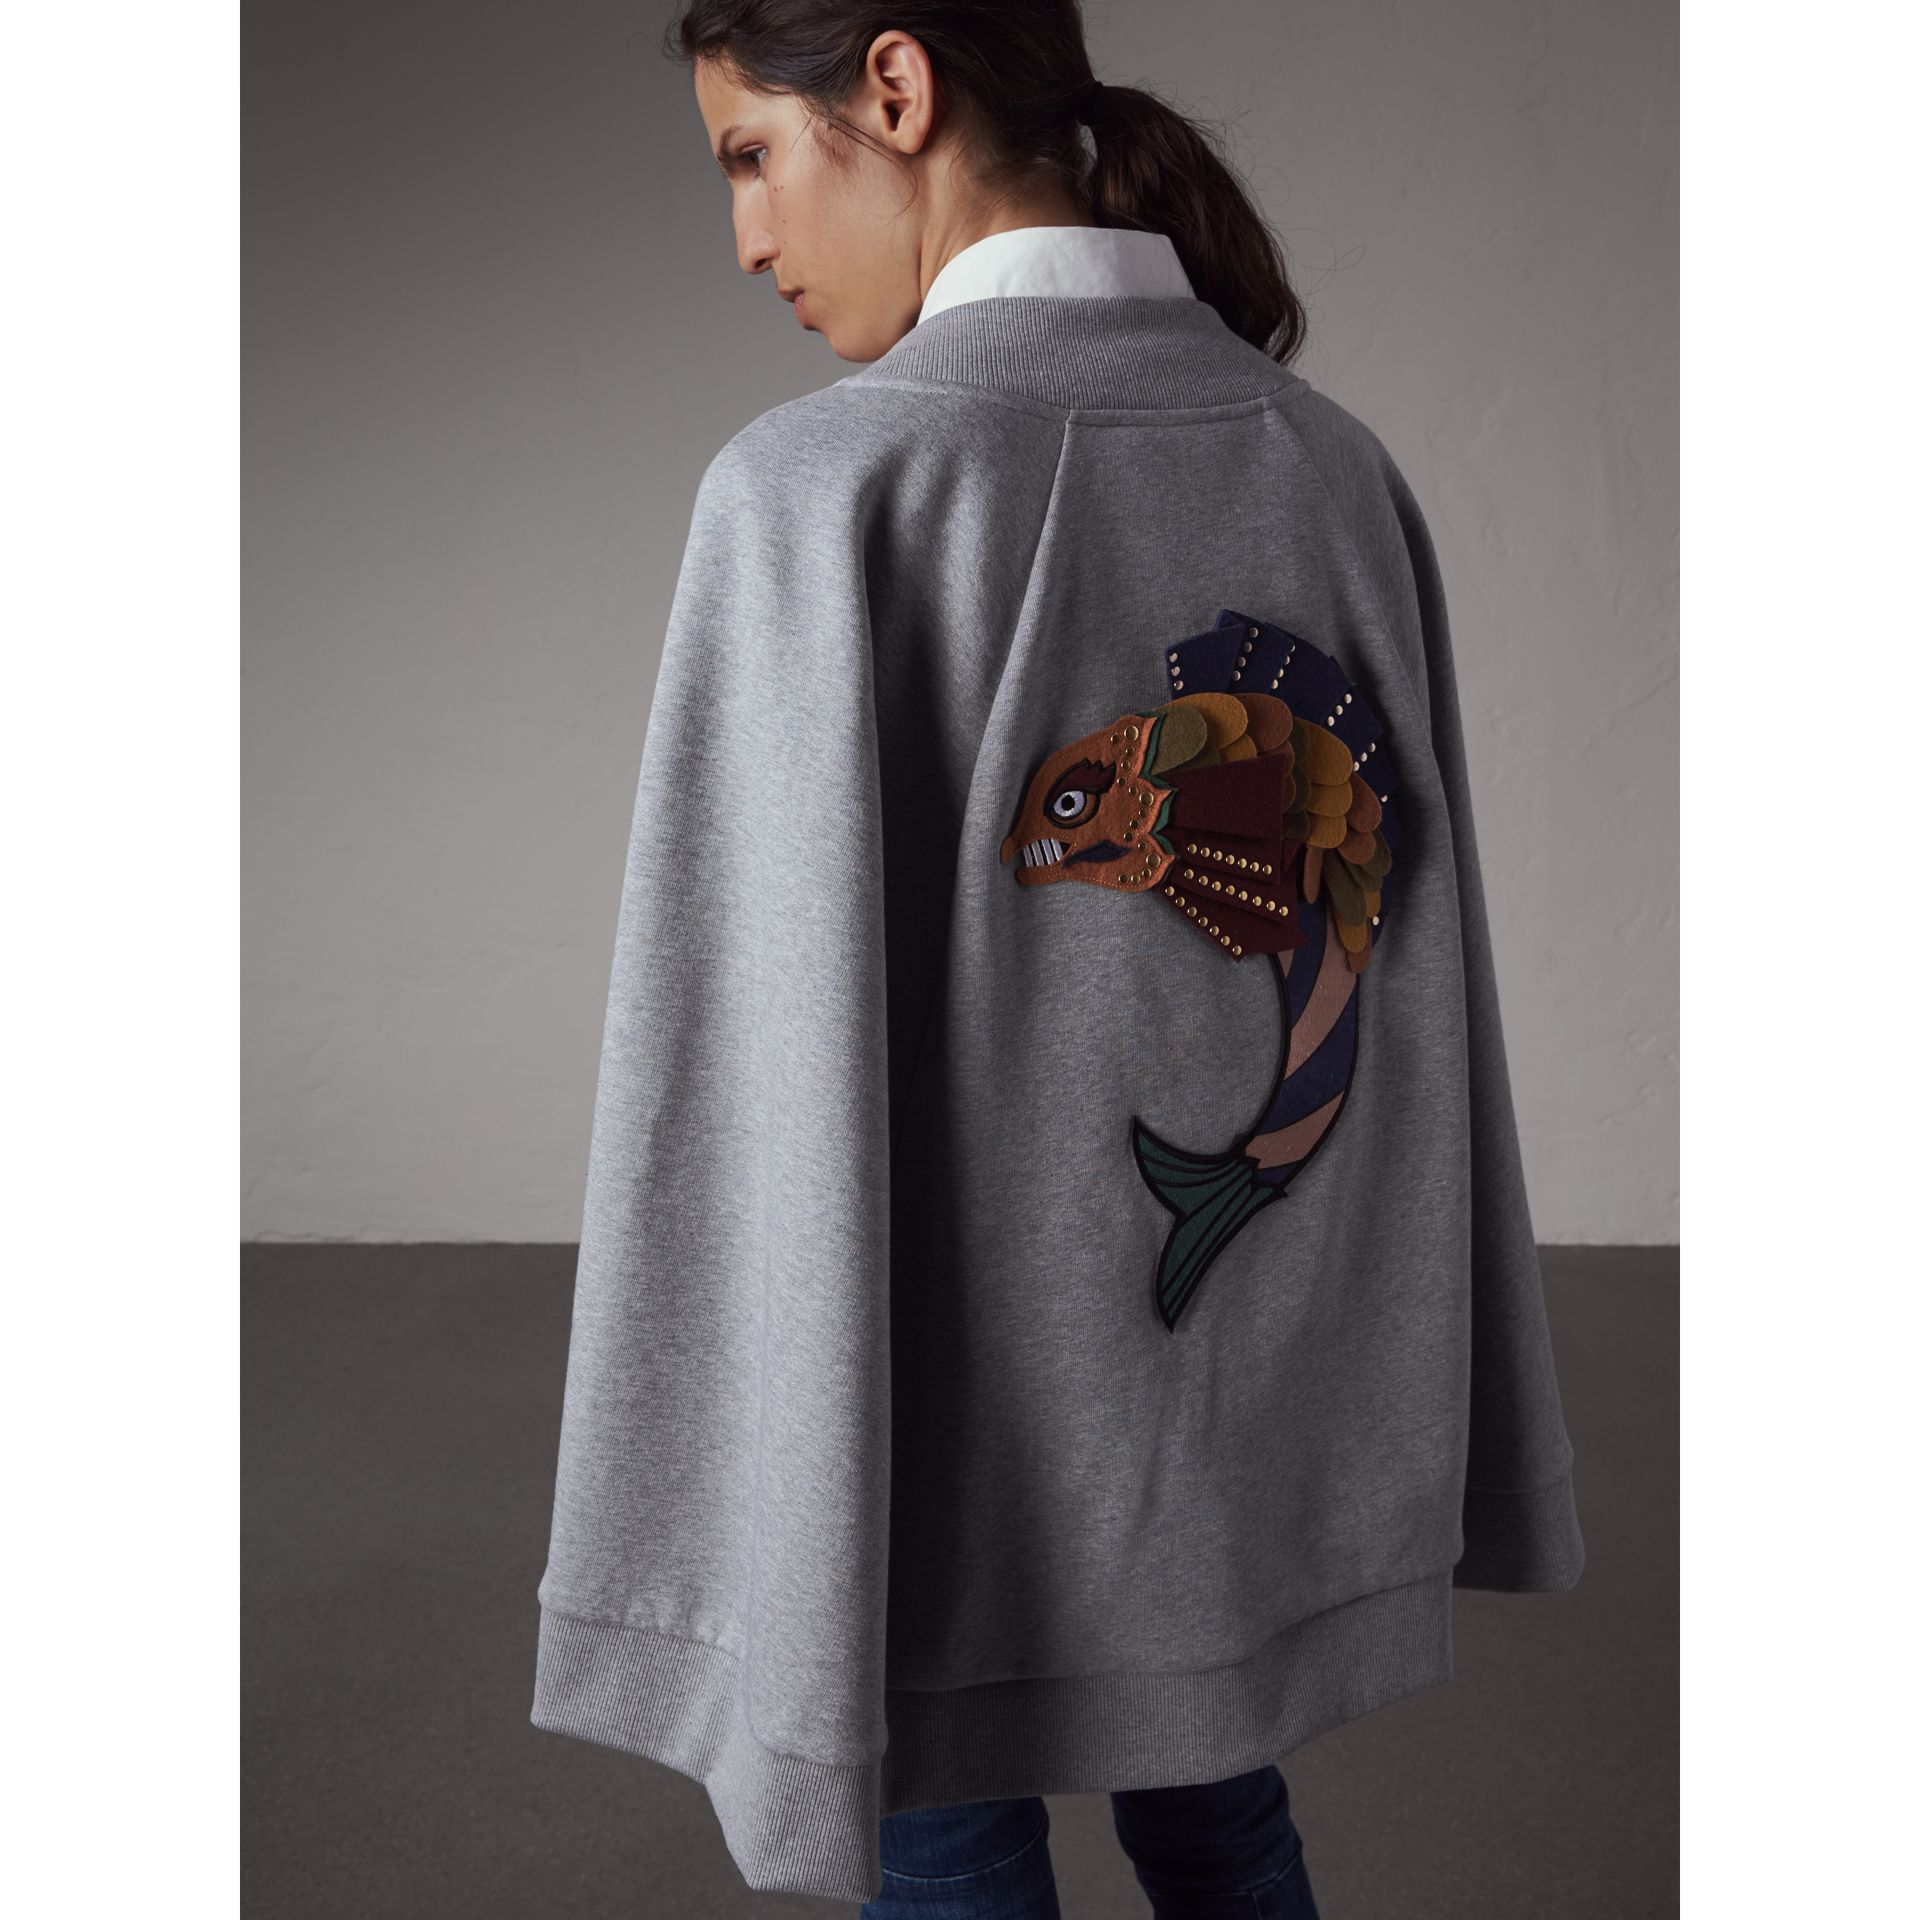 Beasts Appliqué Sweatshirt Cape in Pale Grey Melange - Women | Burberry - gallery image 3